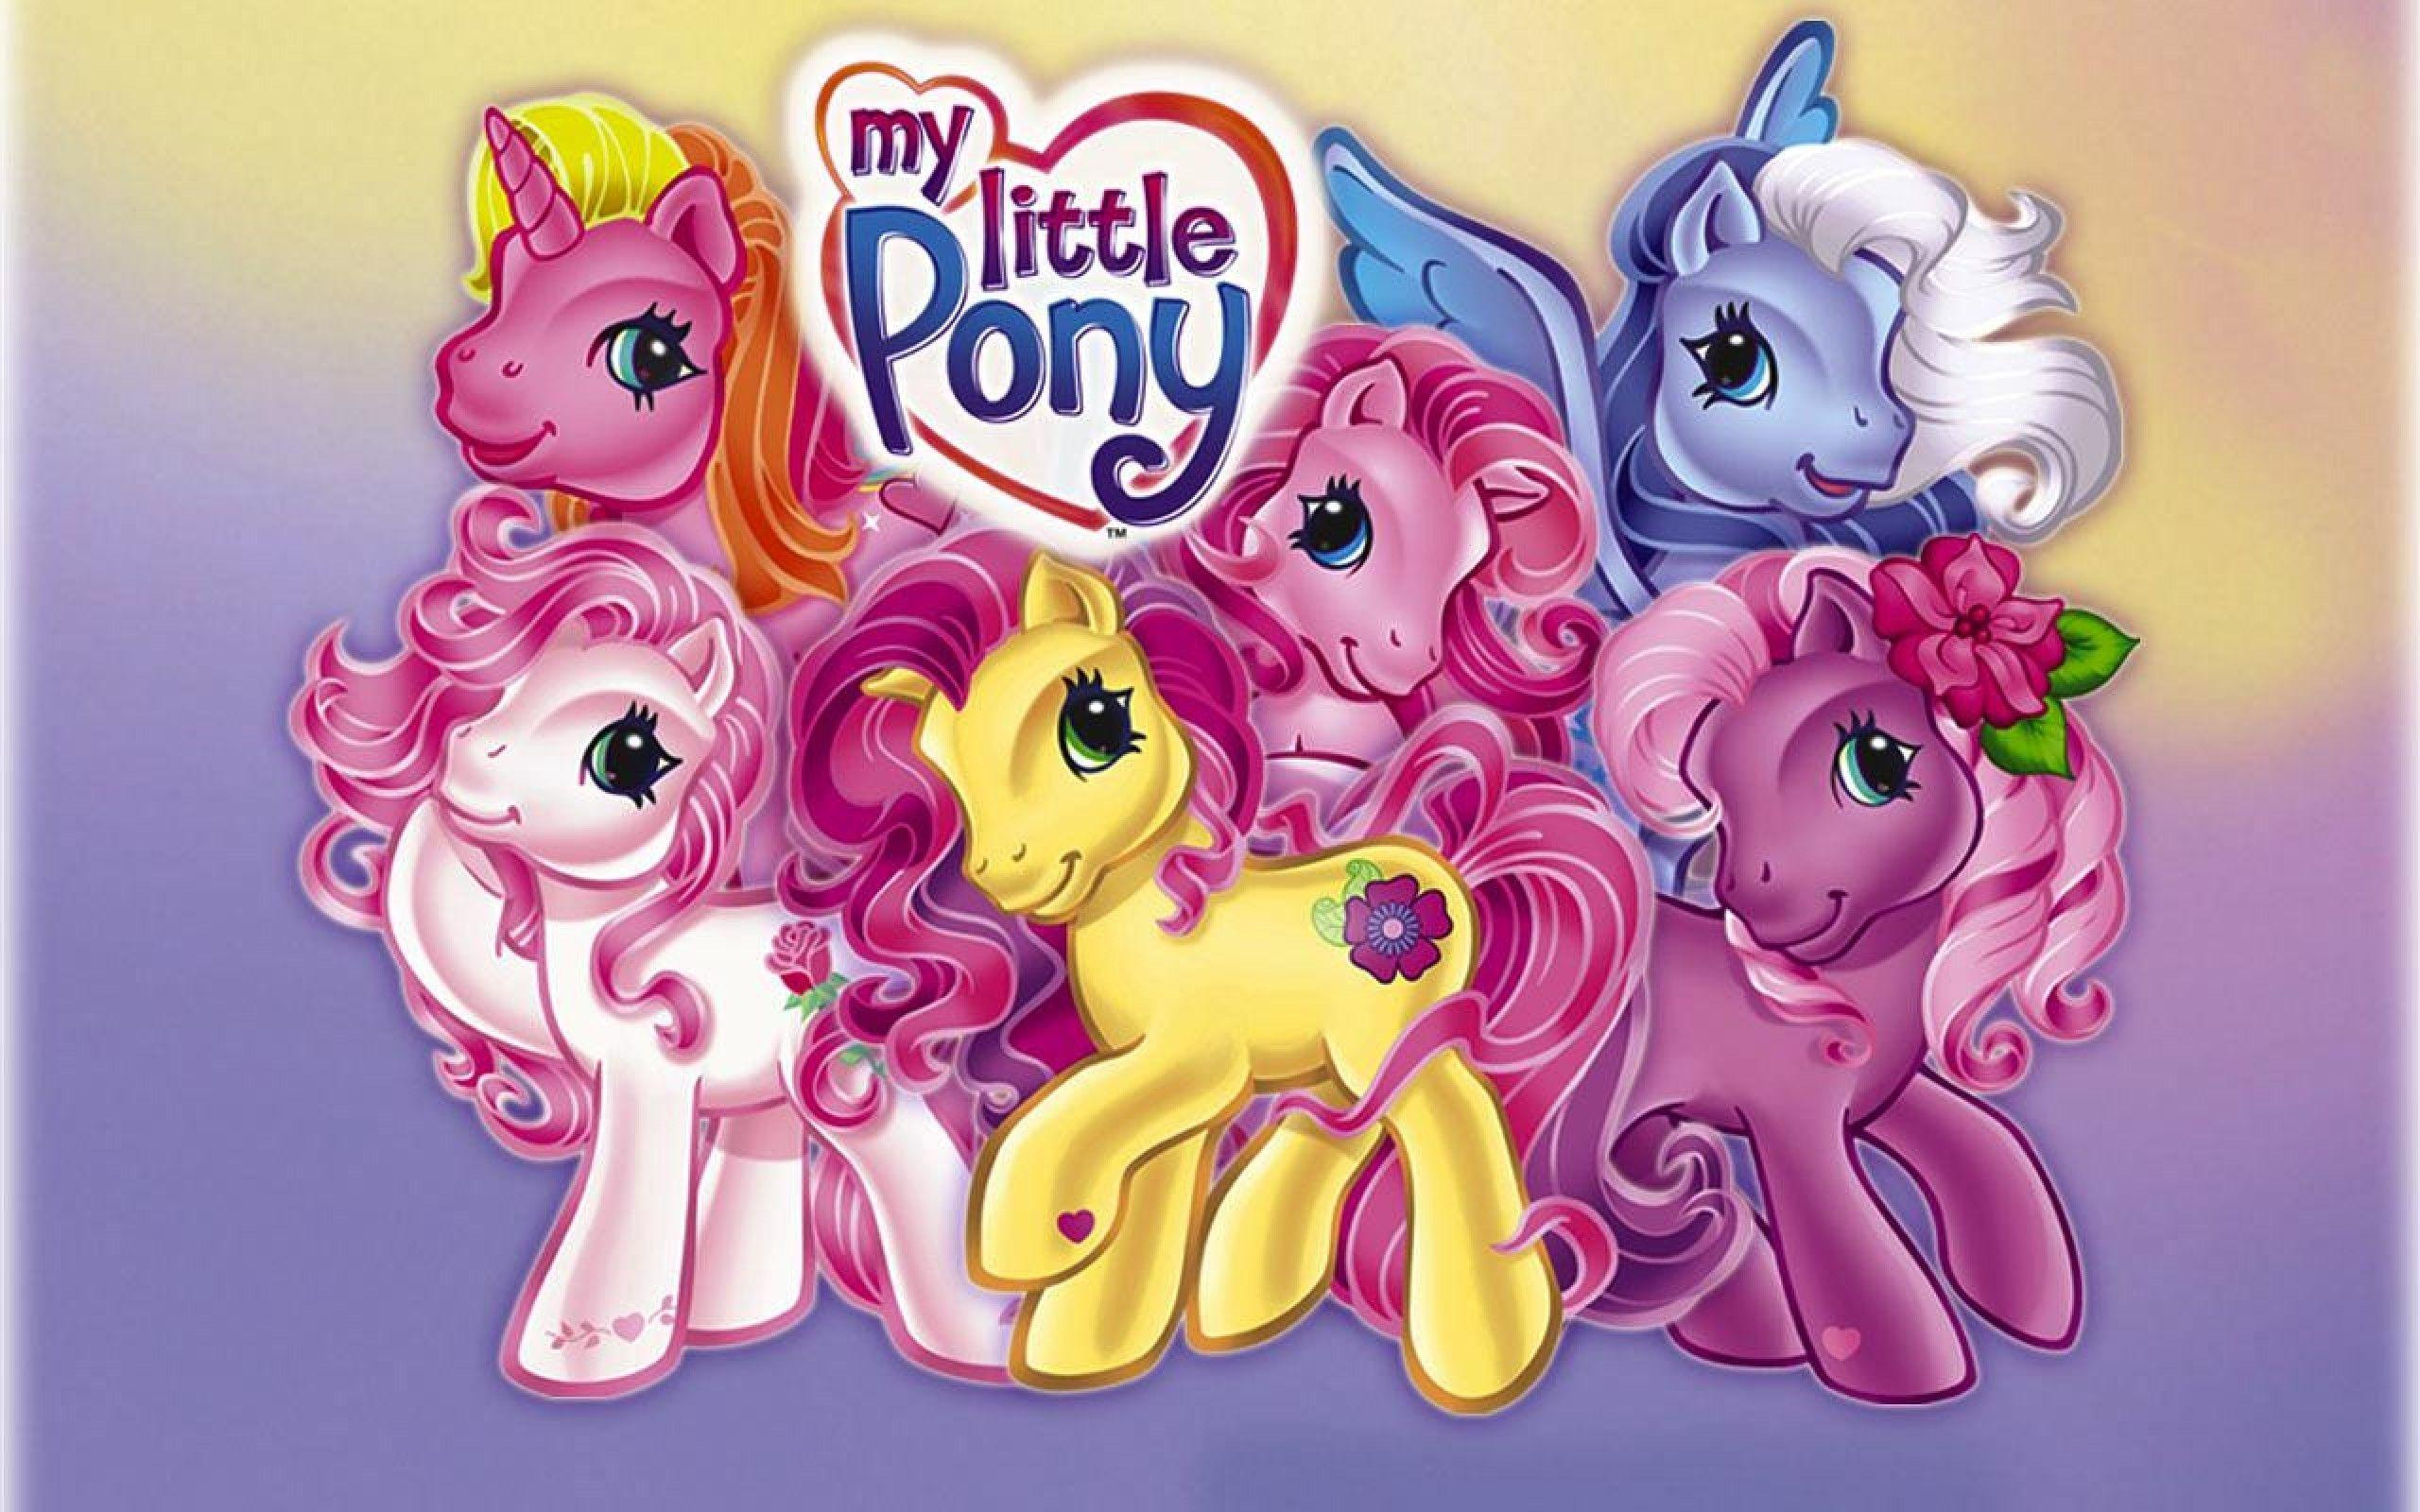 My Little Pony G3 Wallpapers